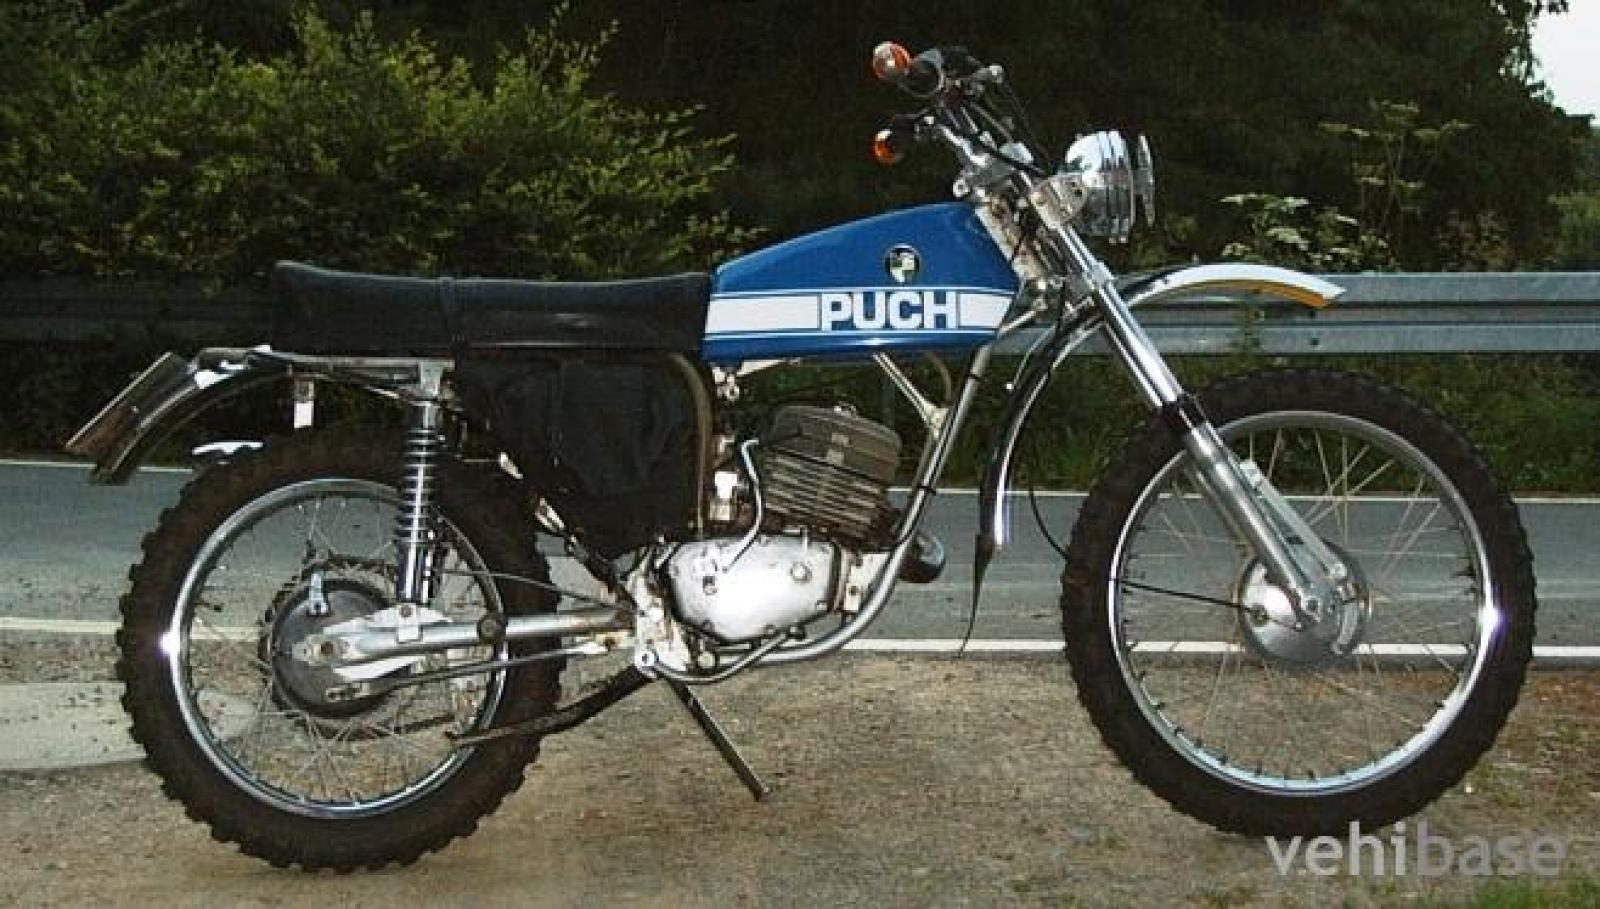 Puch GS 350 F4T images #121470